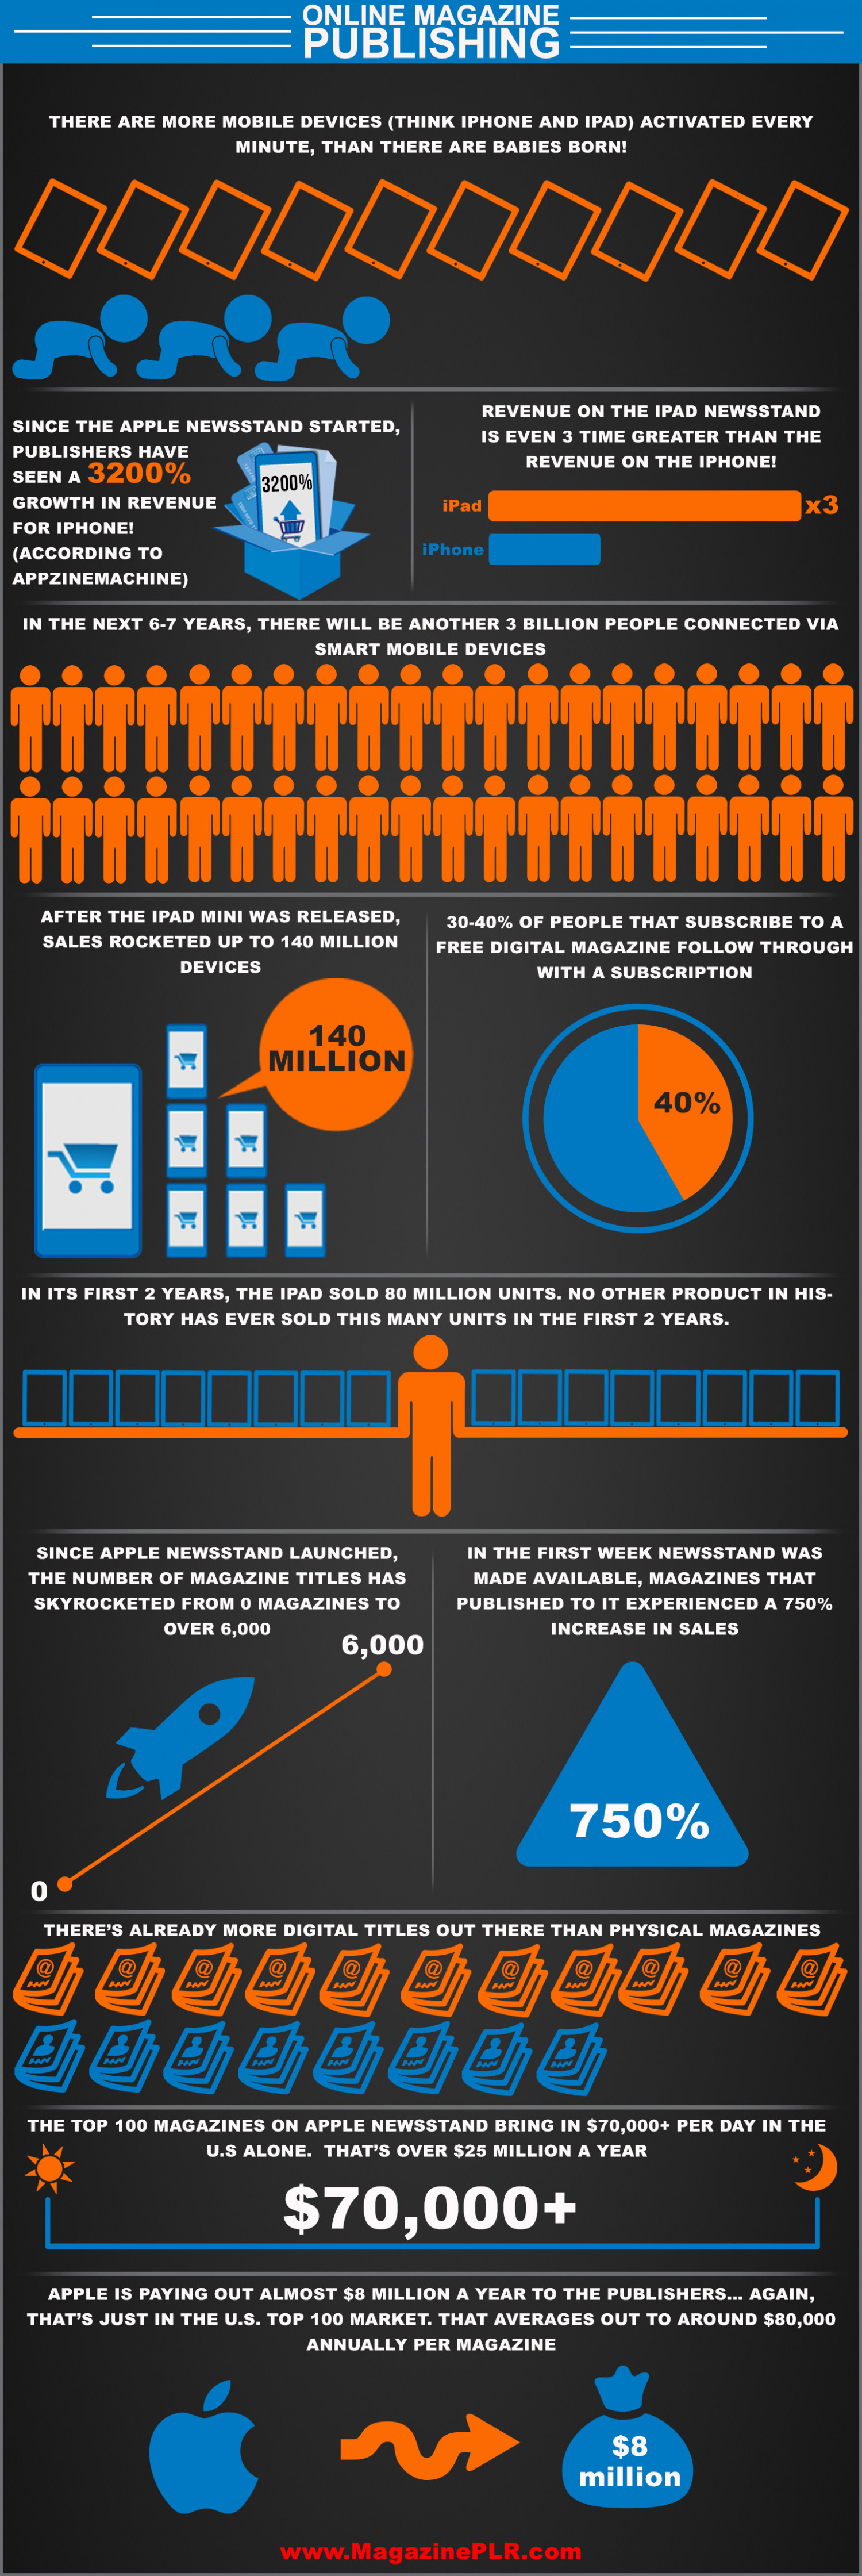 Online Magazine Publishing Infographic